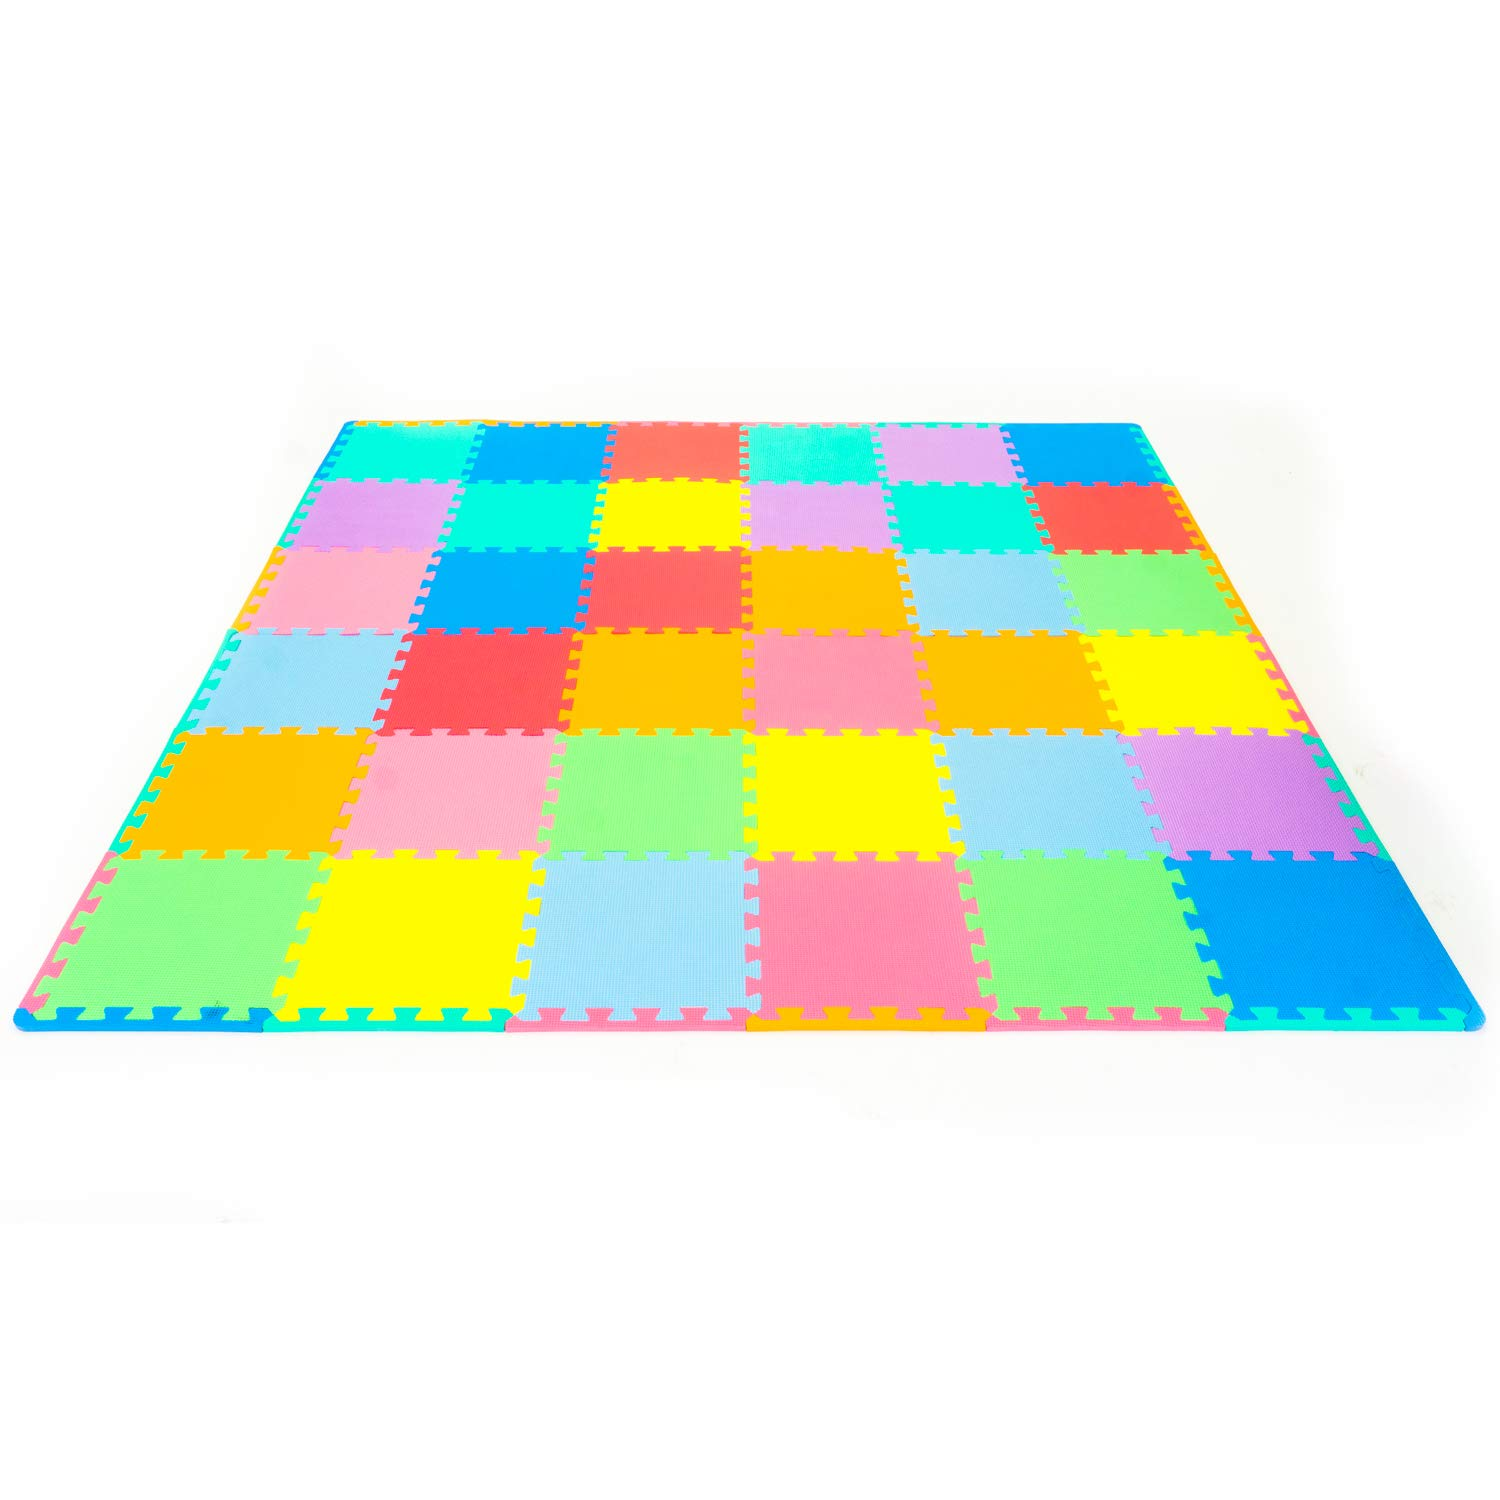 ProSource Puzzle Solid Foam Play Mat for Kids - 36 tiles with edges by ProSource